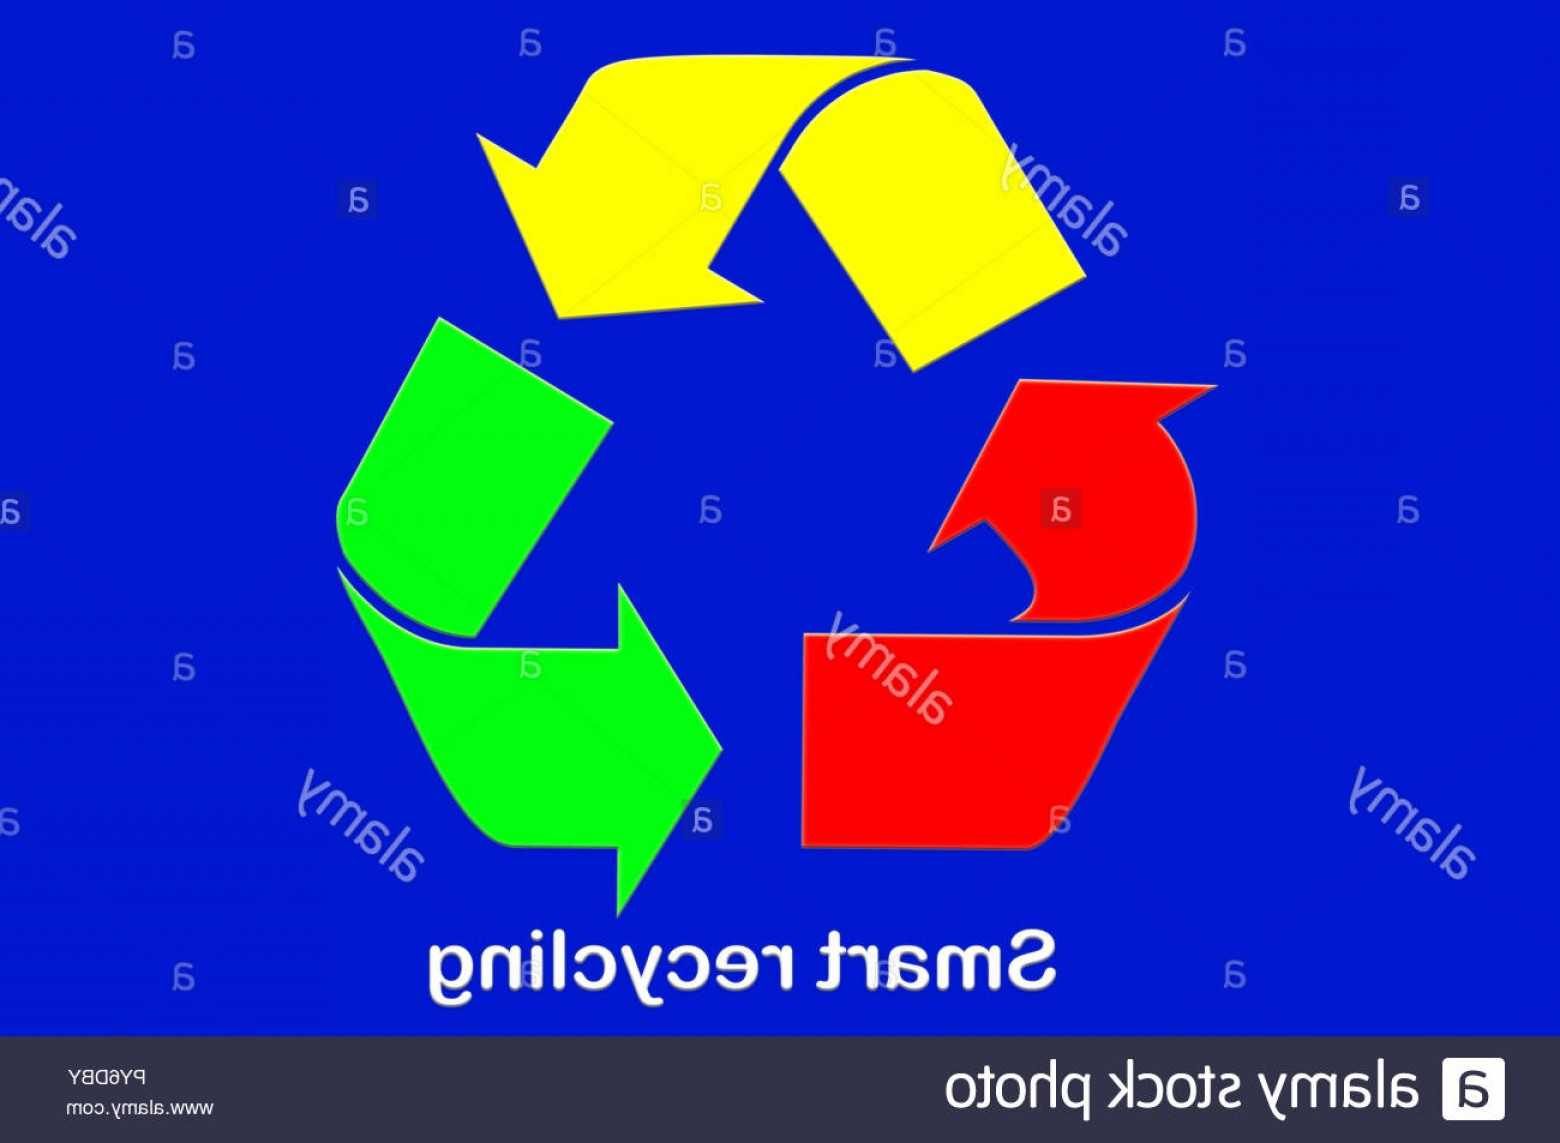 Recycle Icon Vector Red: Recycle Icon Vector Colored On Green Yellow And Red Color Blue Background Image